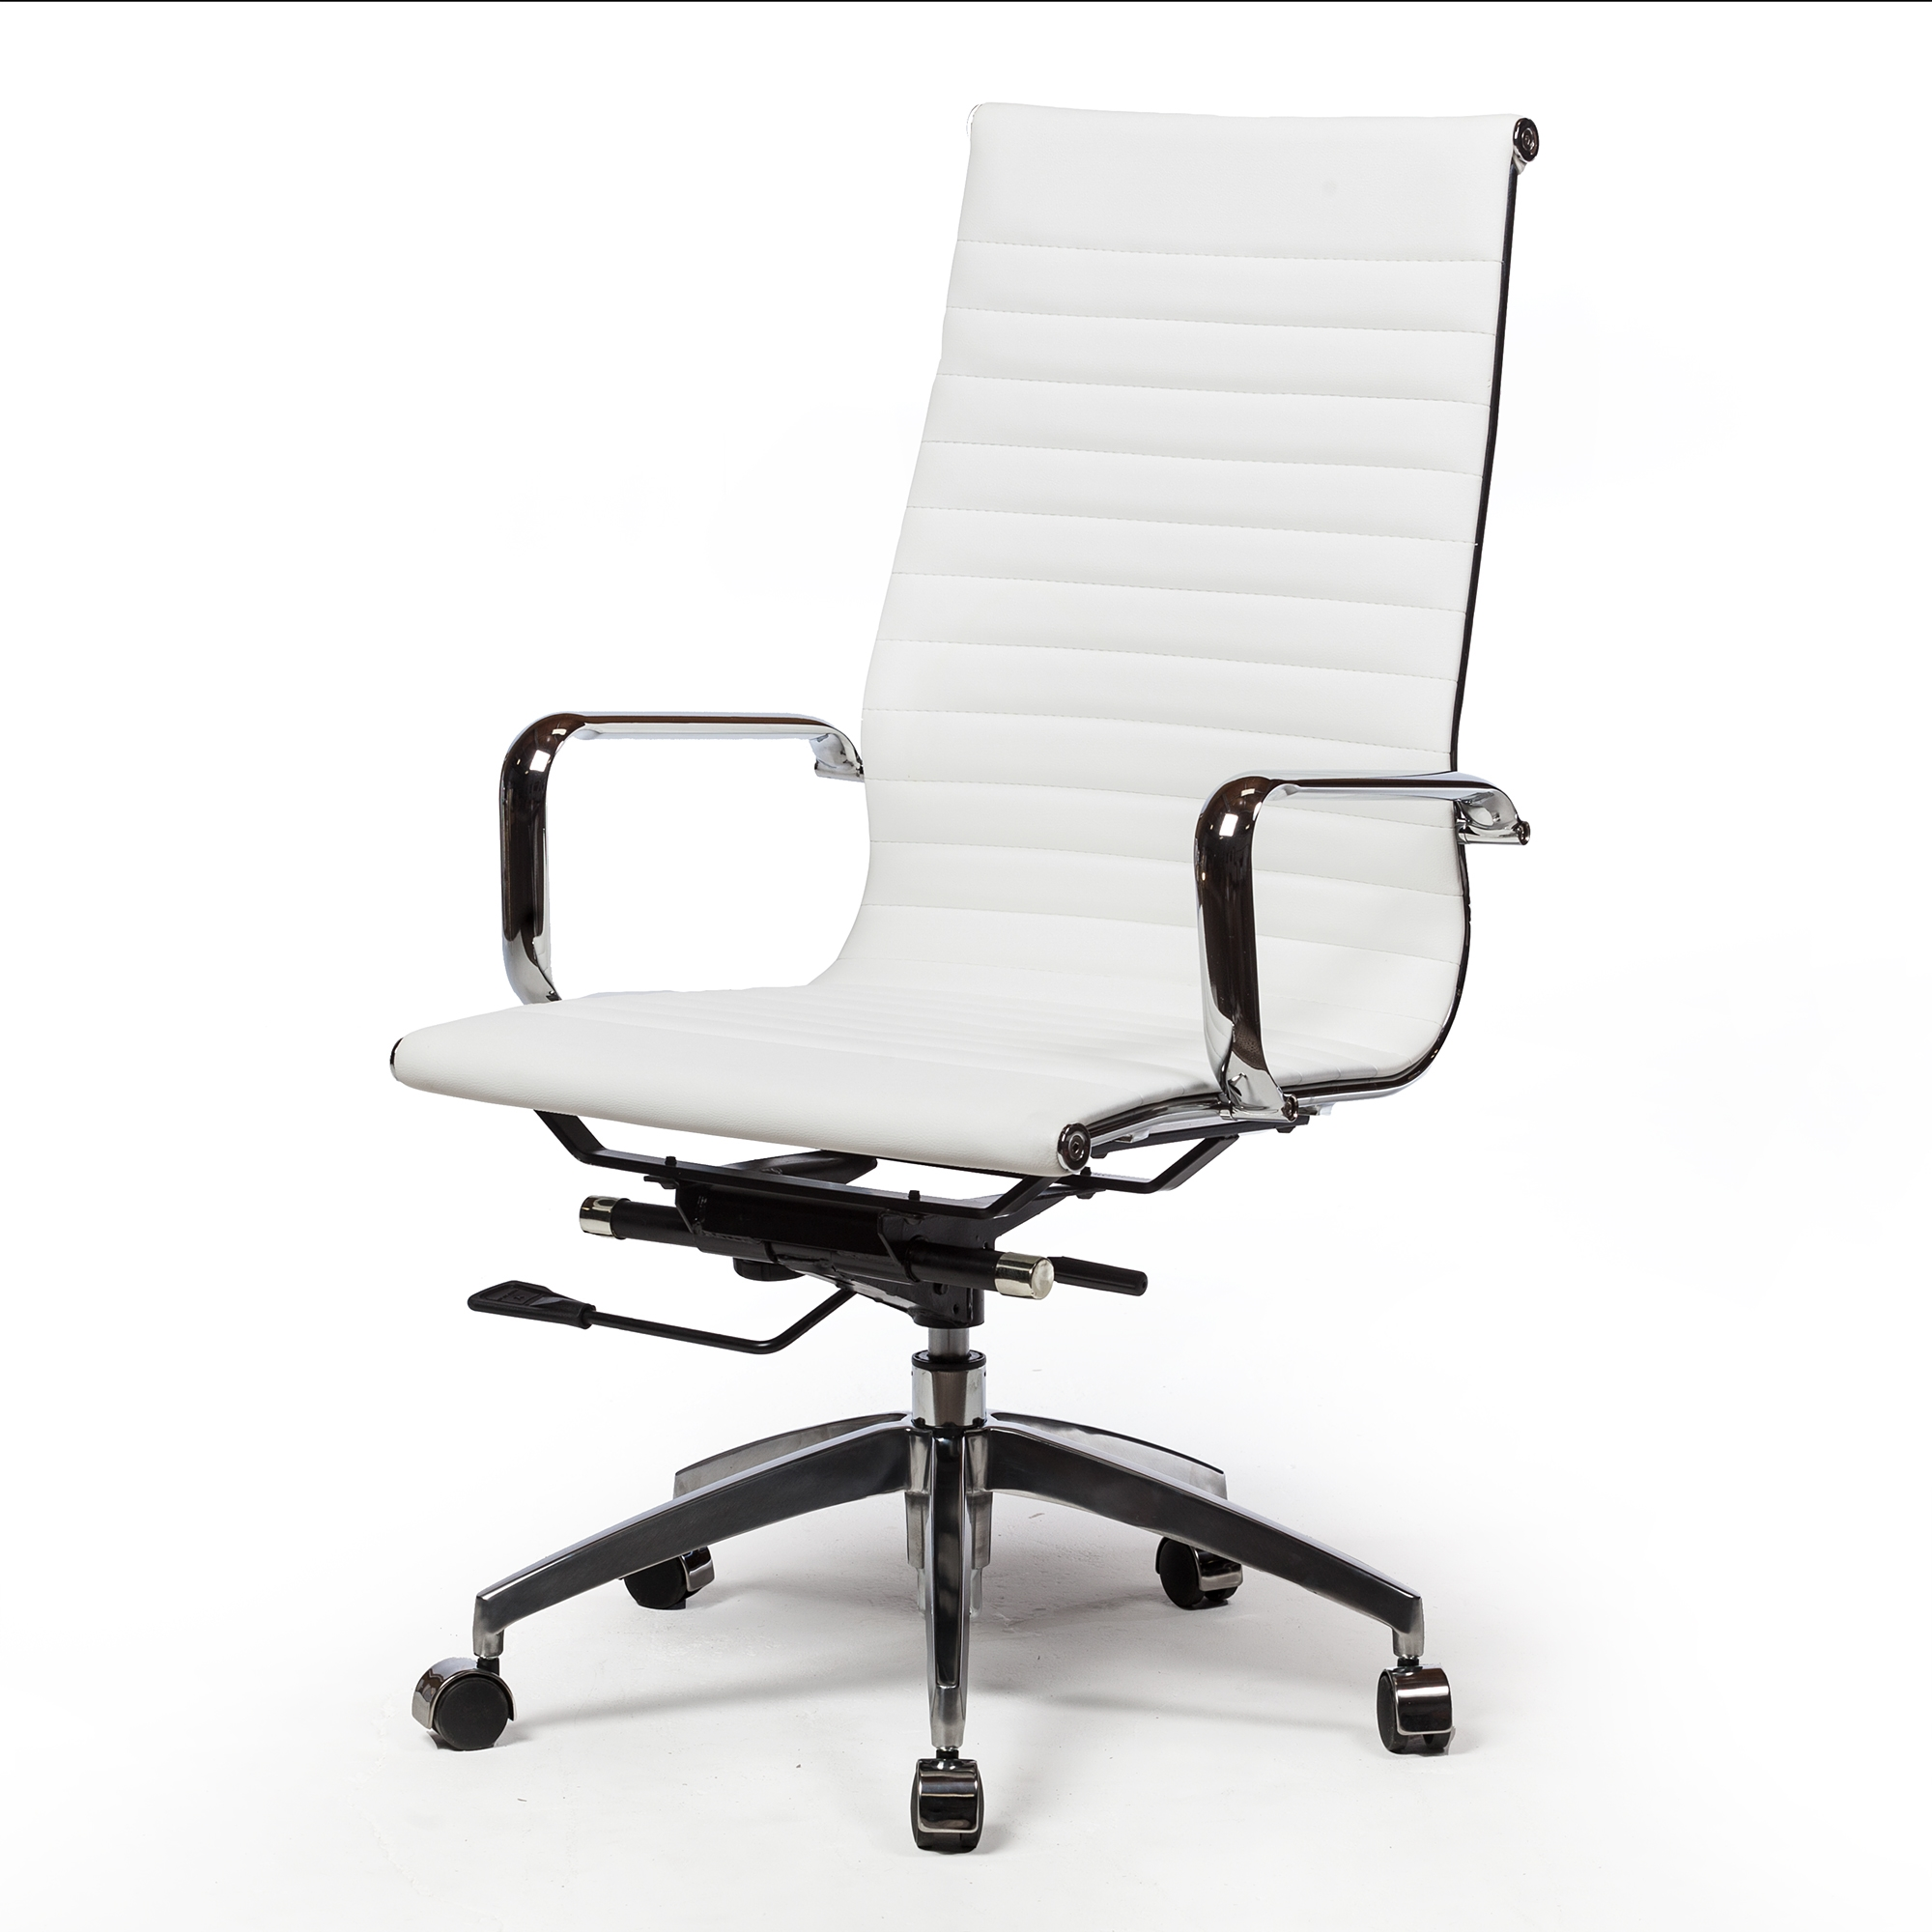 Mid Century Modern Office Chair In White The Khazana Home Austin